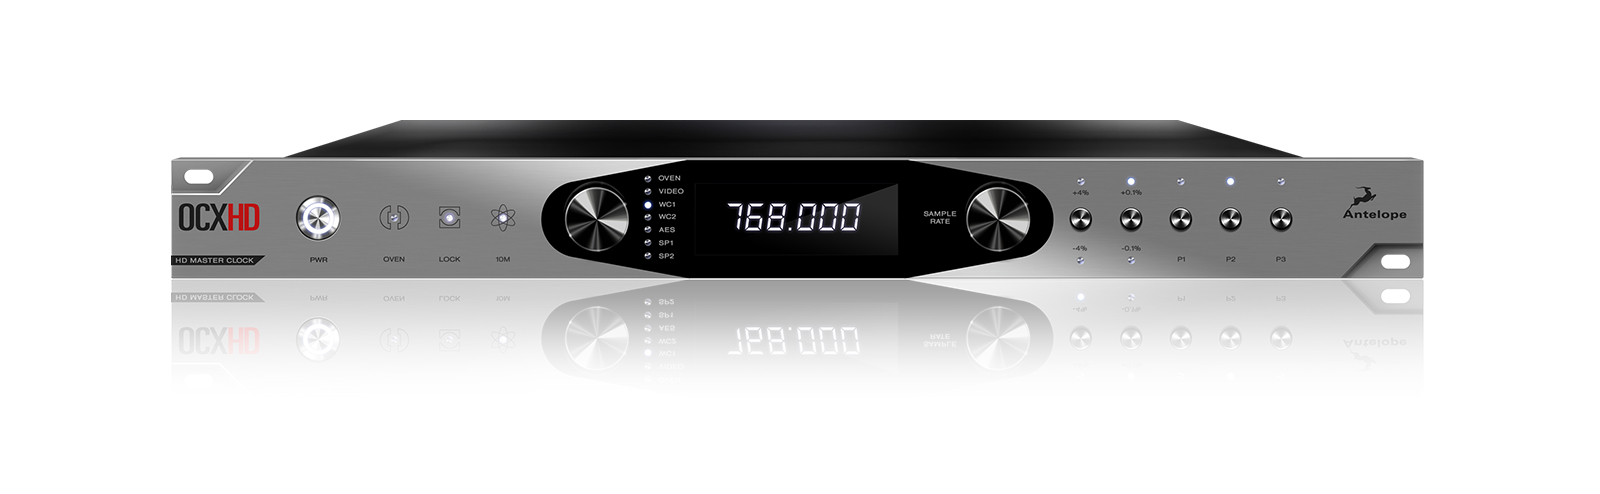 conectivity ocx hd front